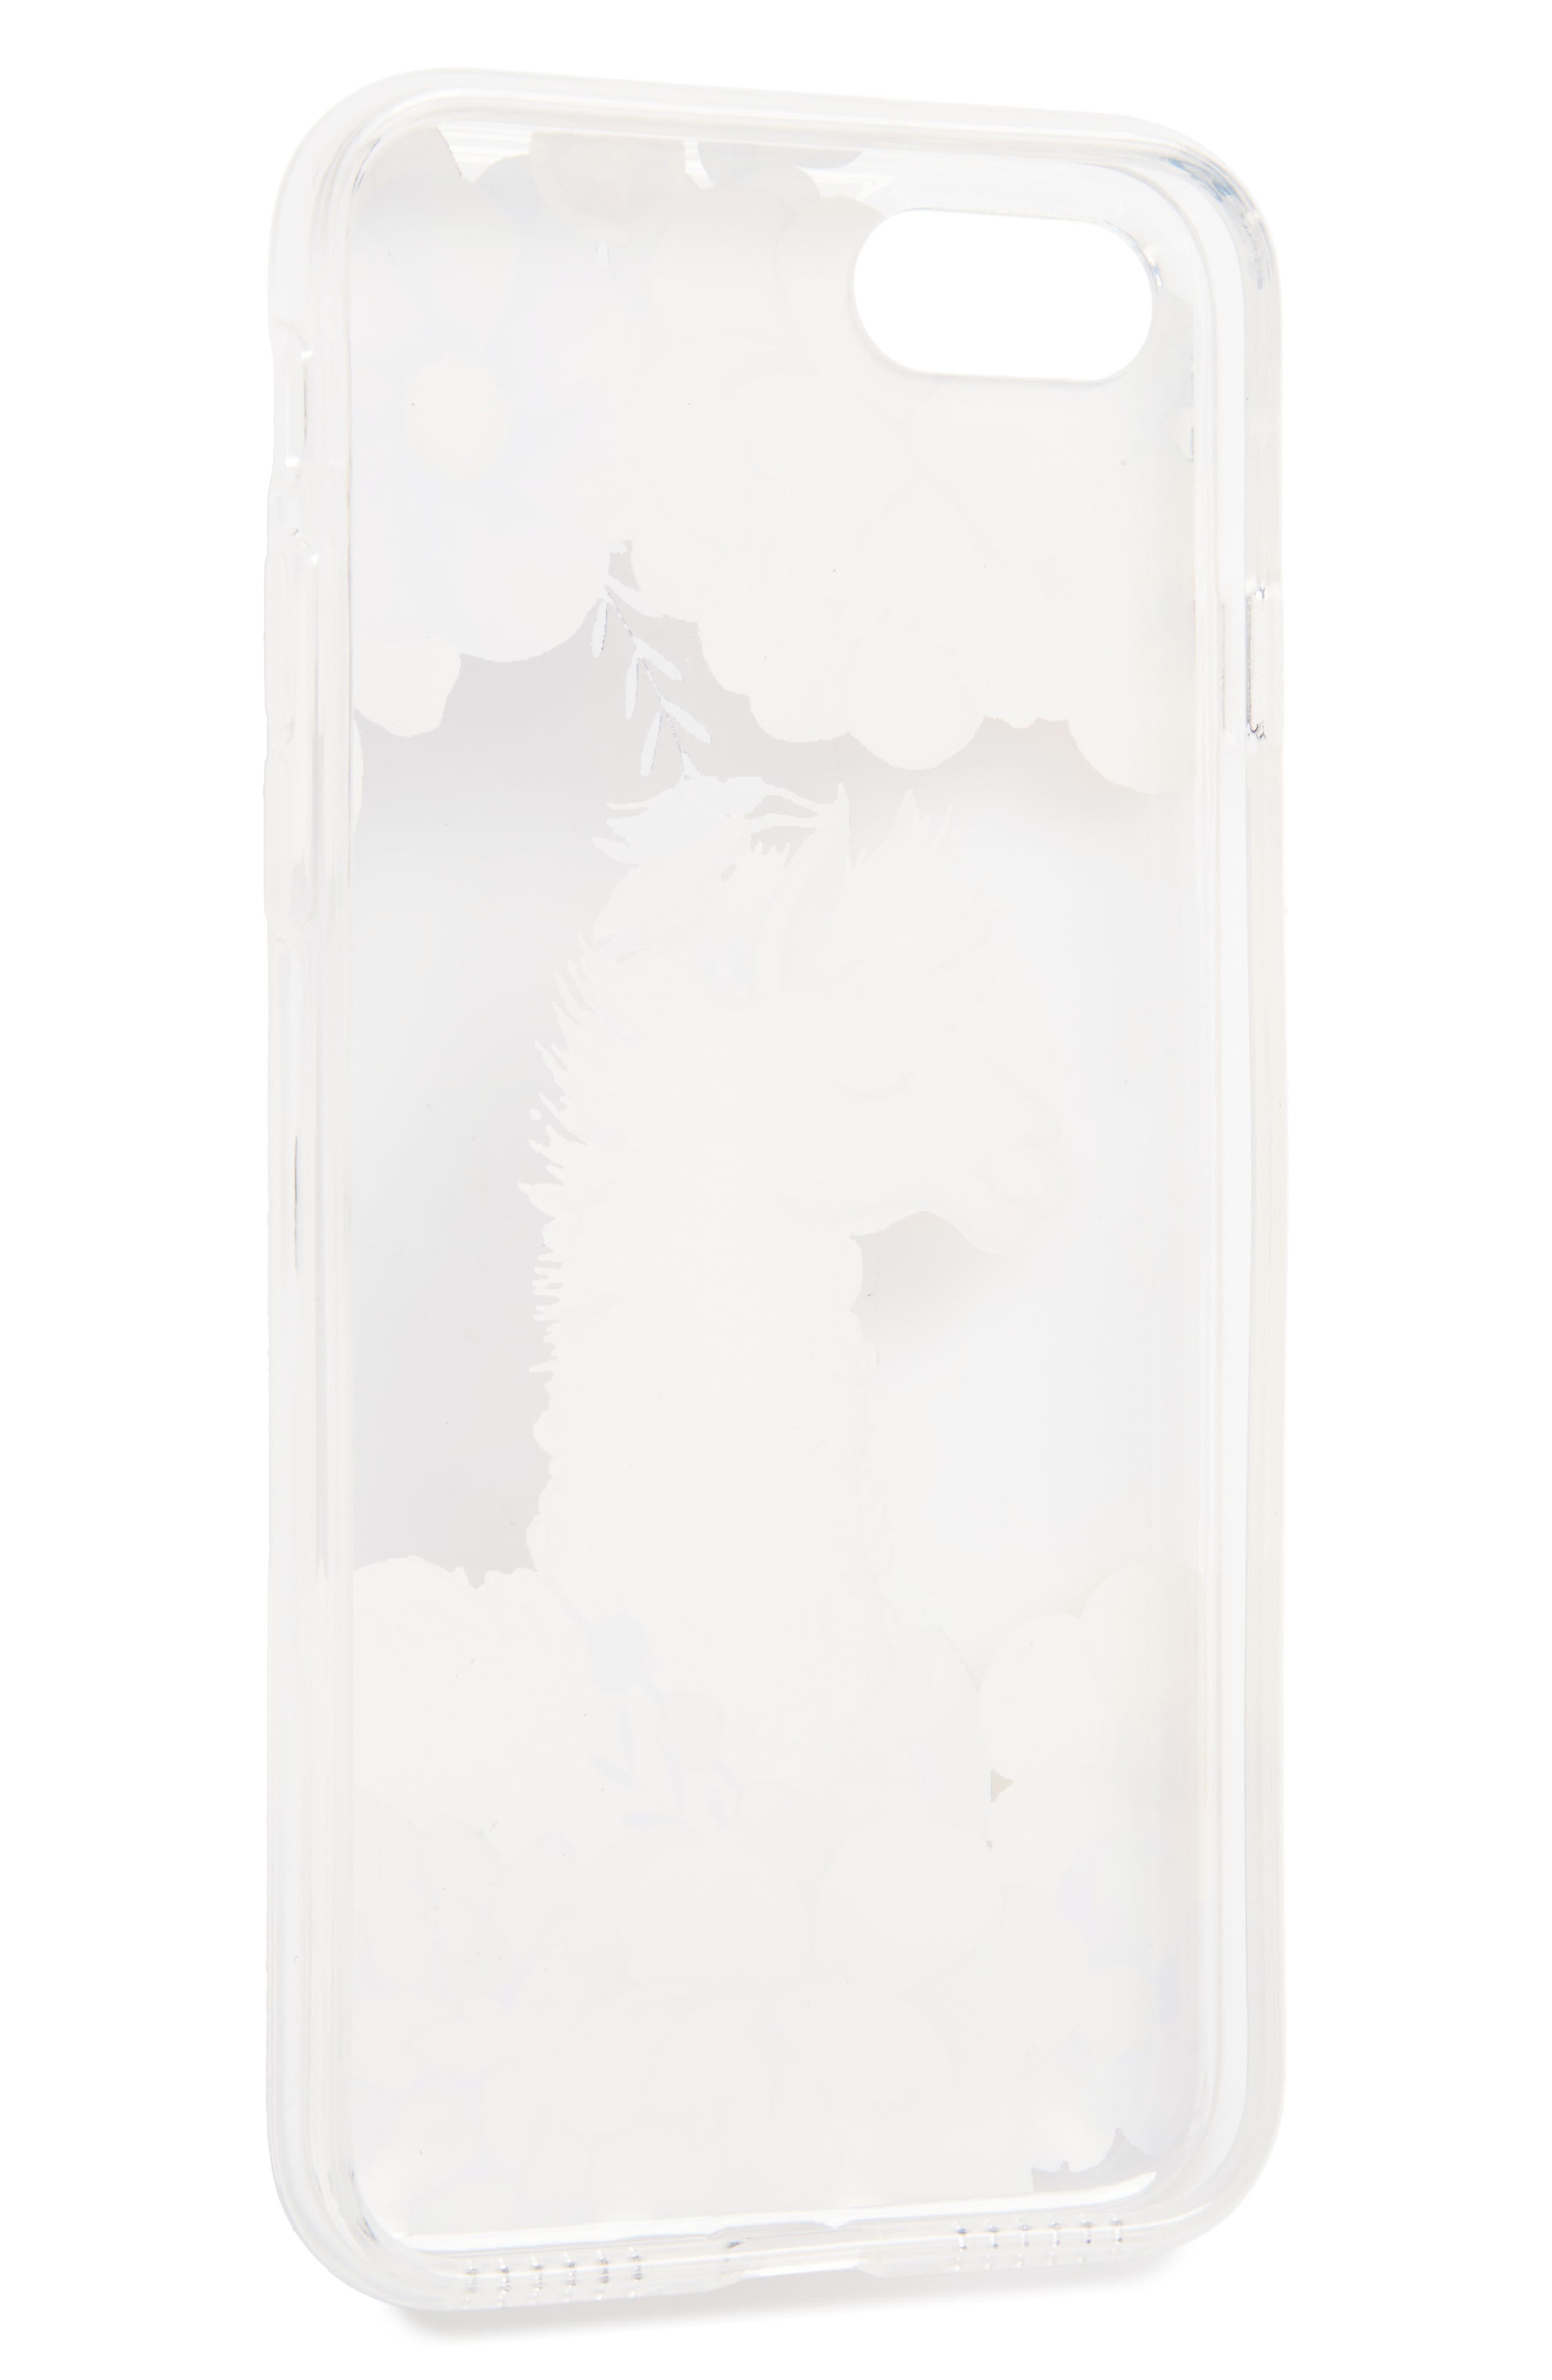 Llama iPhone 7 Case,                             Alternate thumbnail 2, color,                             Clear/ White